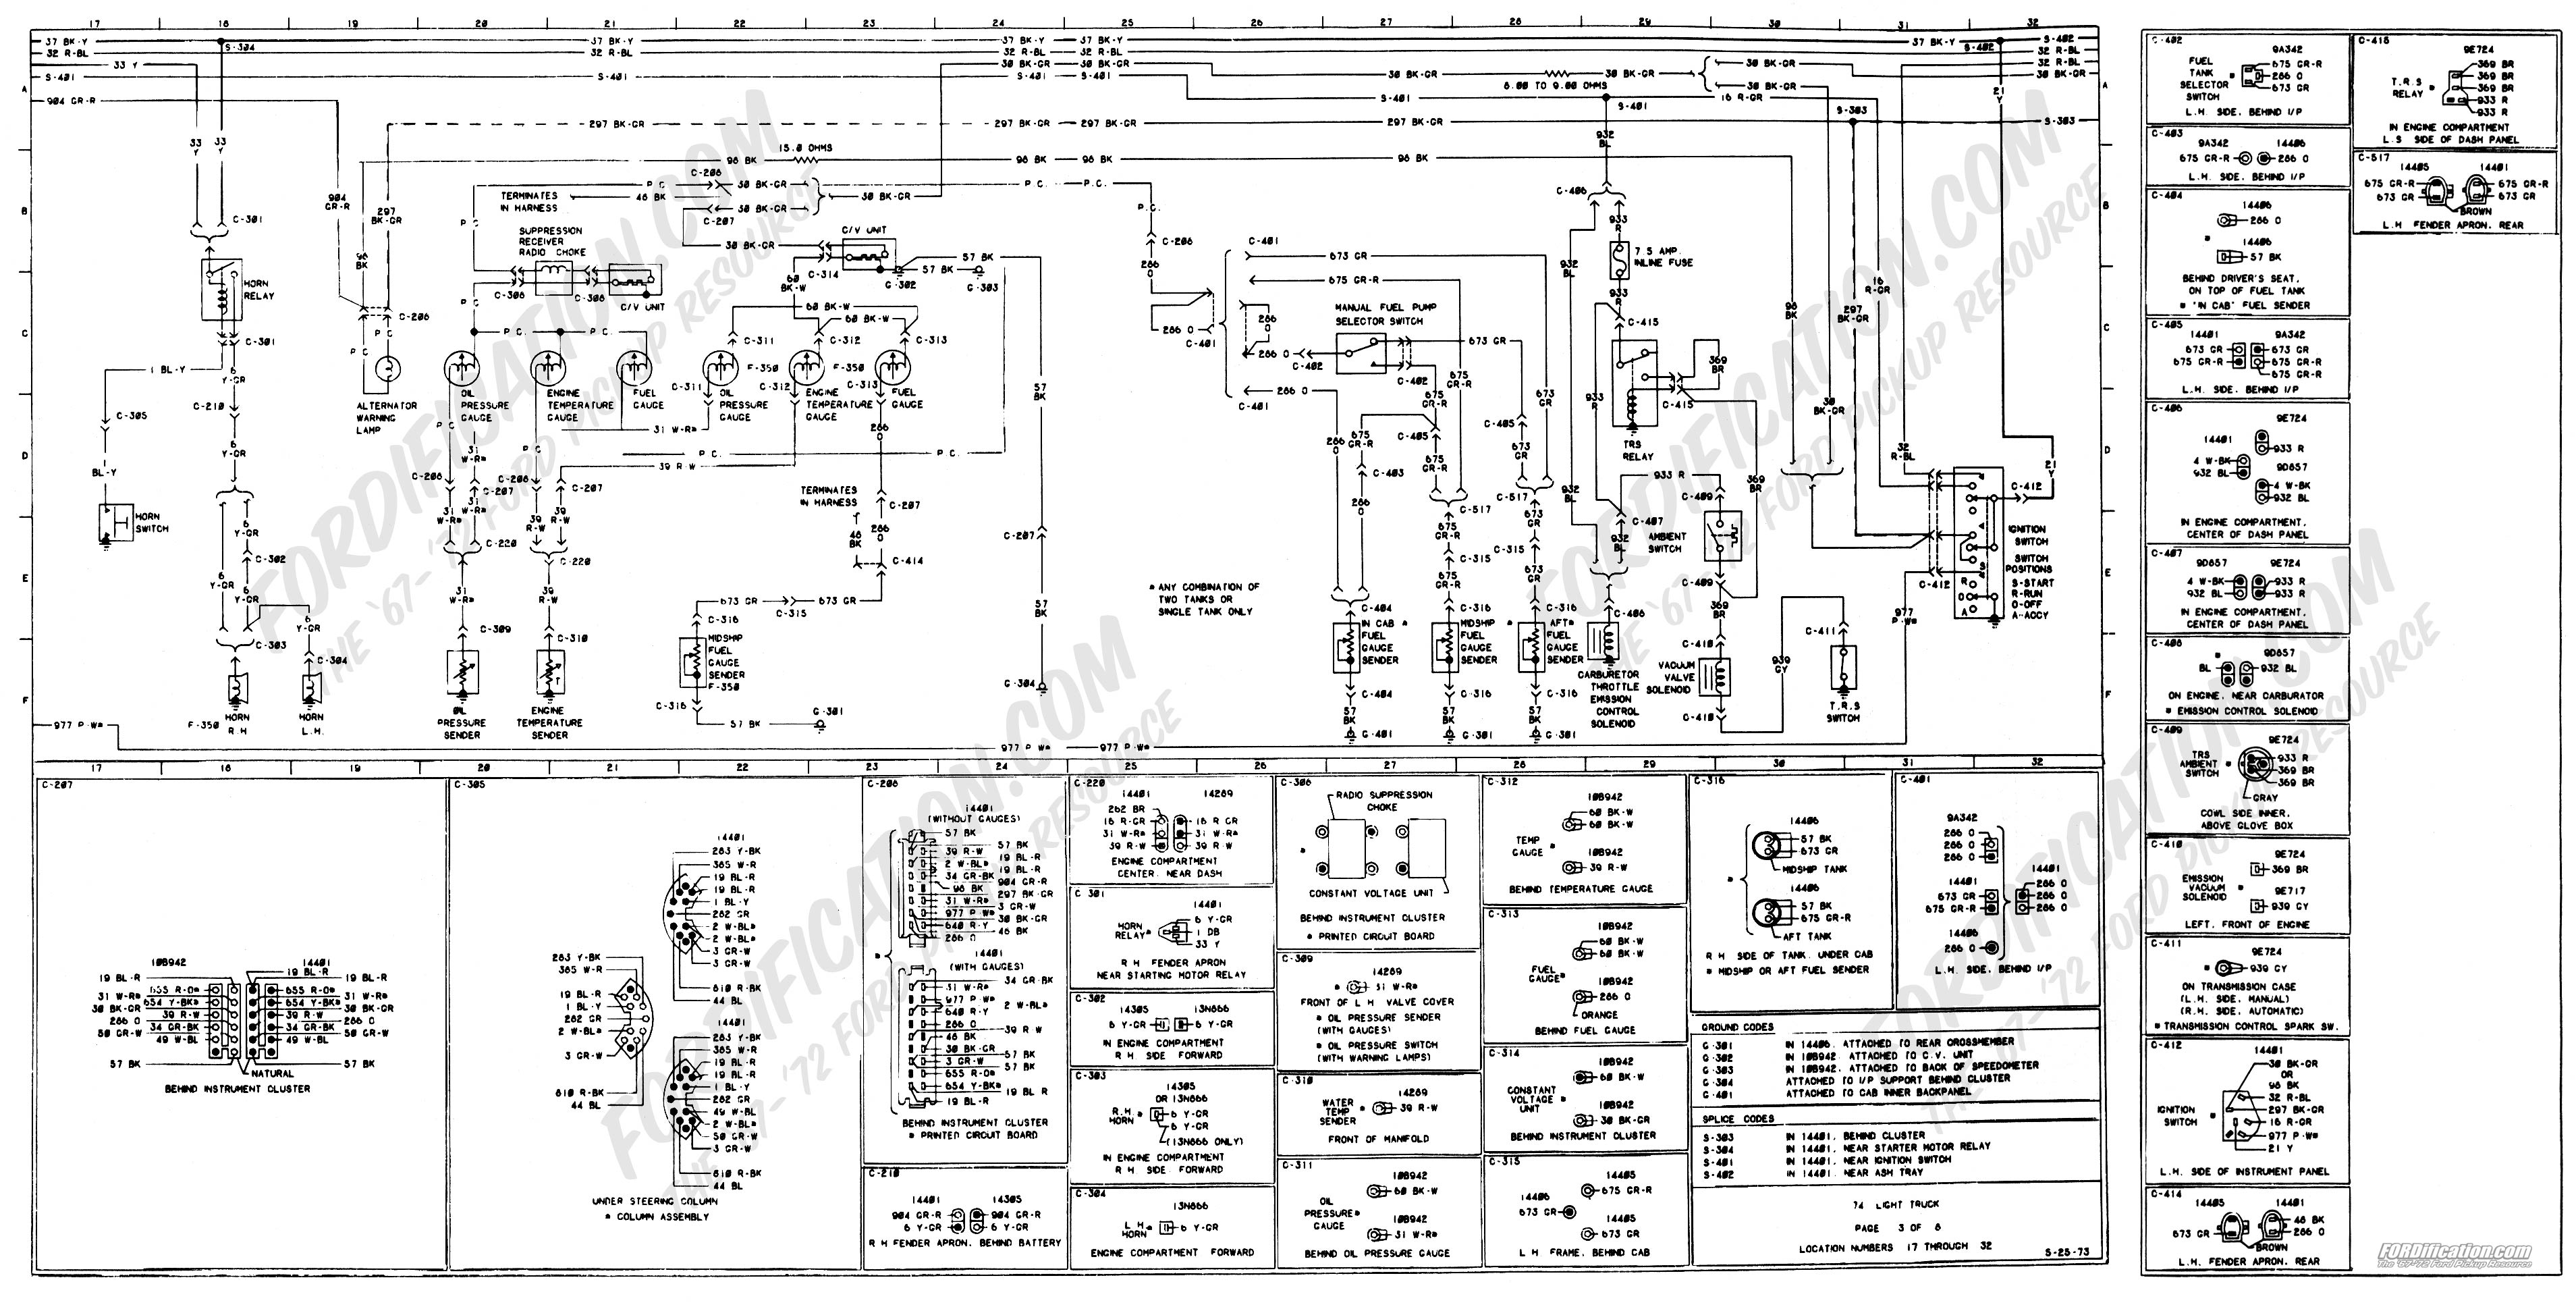 1979 Ford Truck Wiring System Modern Design Of Diagram 1975 Diagrams 1973 Schematics Fordification Net Rh 1977